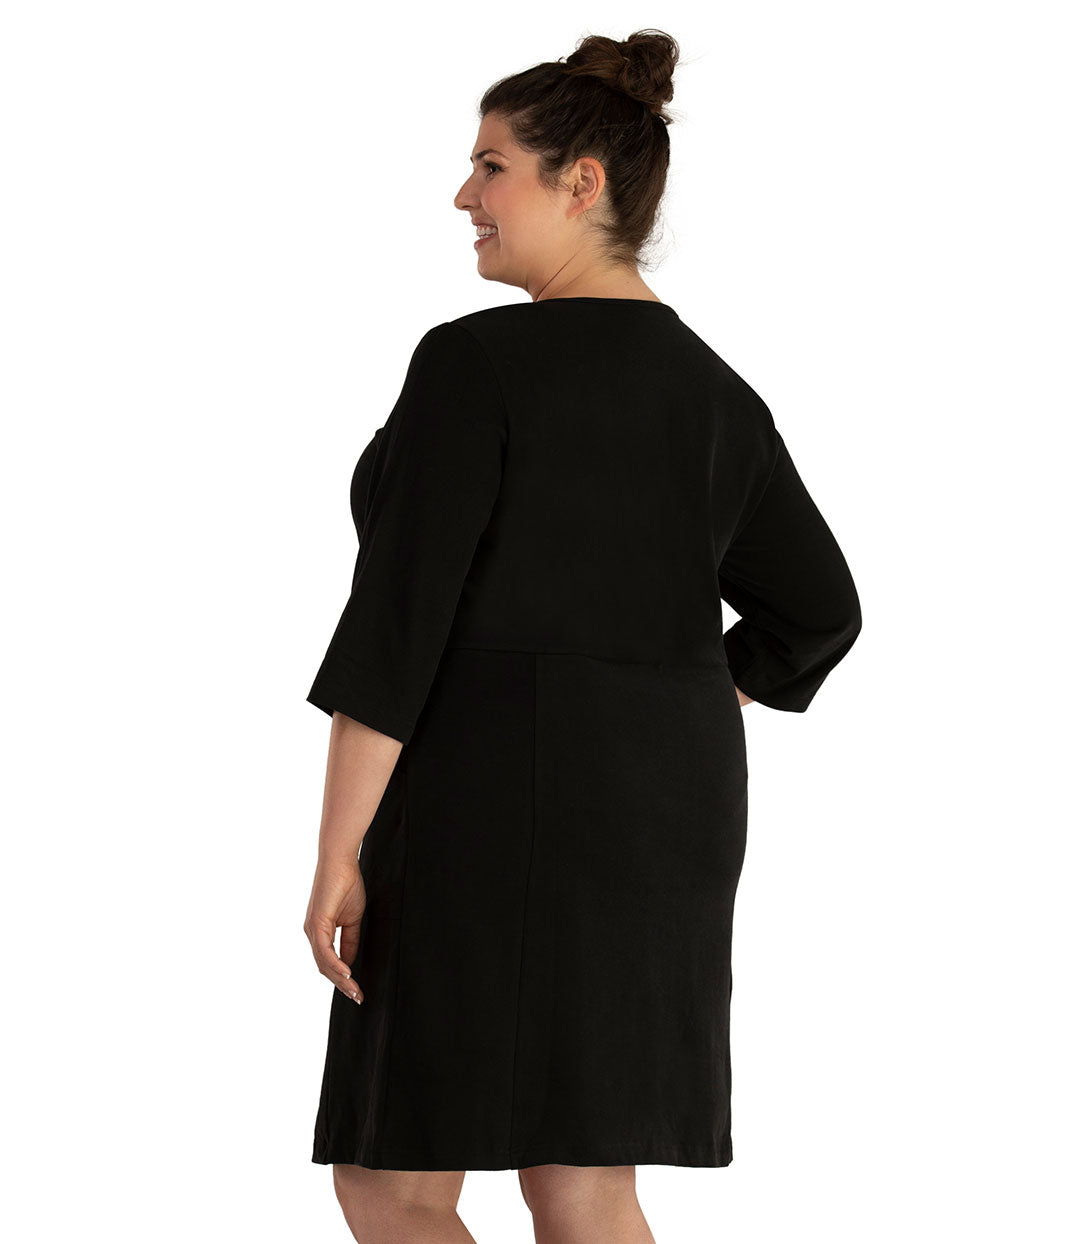 Legacy Cotton Casual 3/4 Sleeve Dress Basic Colors-Tops Dress-Hop Wo Trading Co Ltd-XL-Black-JunoActive